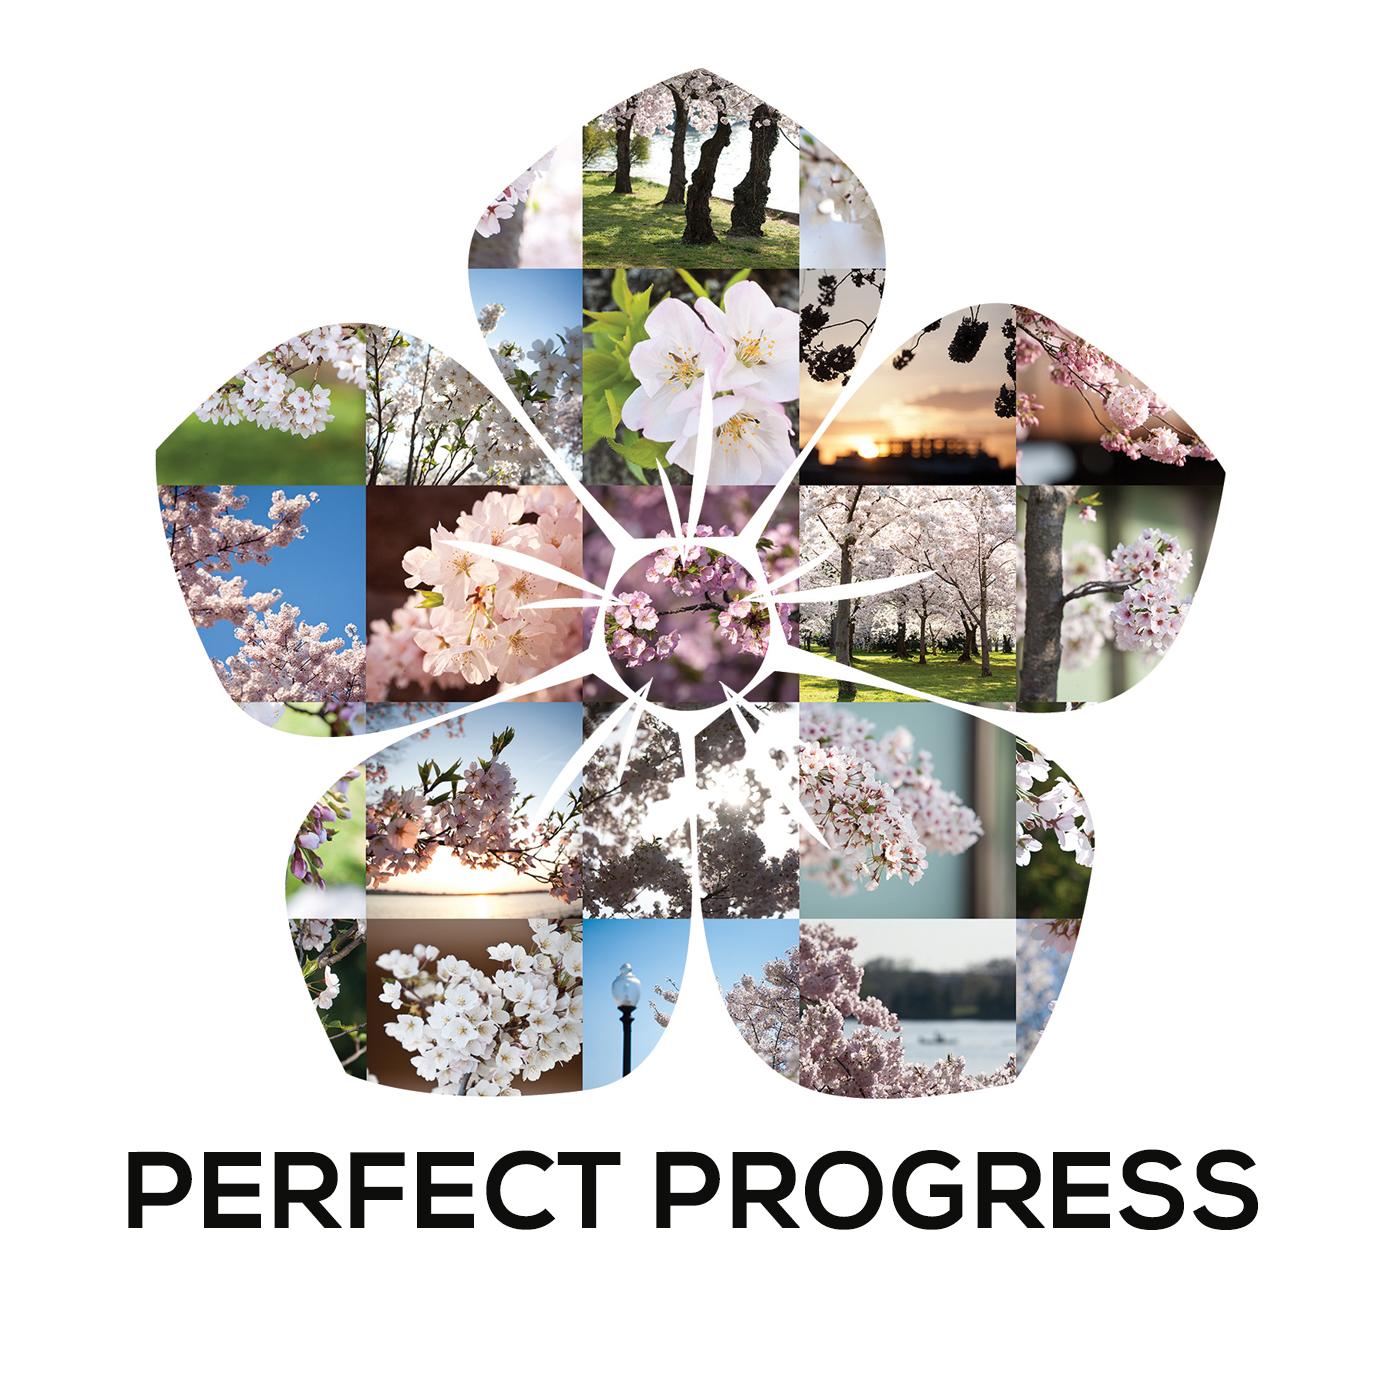 Perfect progress investments limited opus besiktning kalmar investments